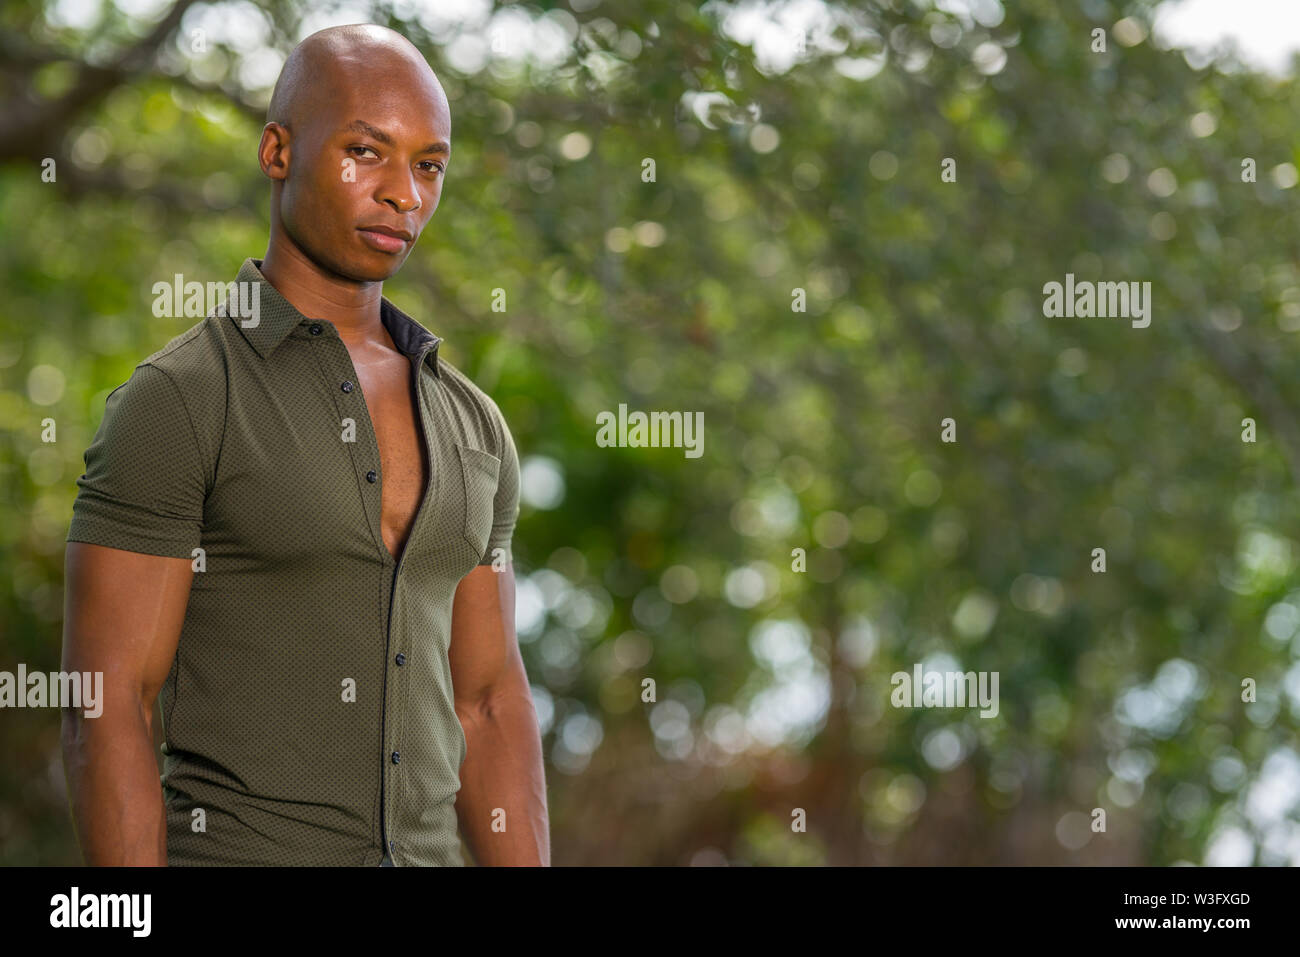 Portrait of a handsome 30 year old black man posing with shoulder towards the camera - Stock Image